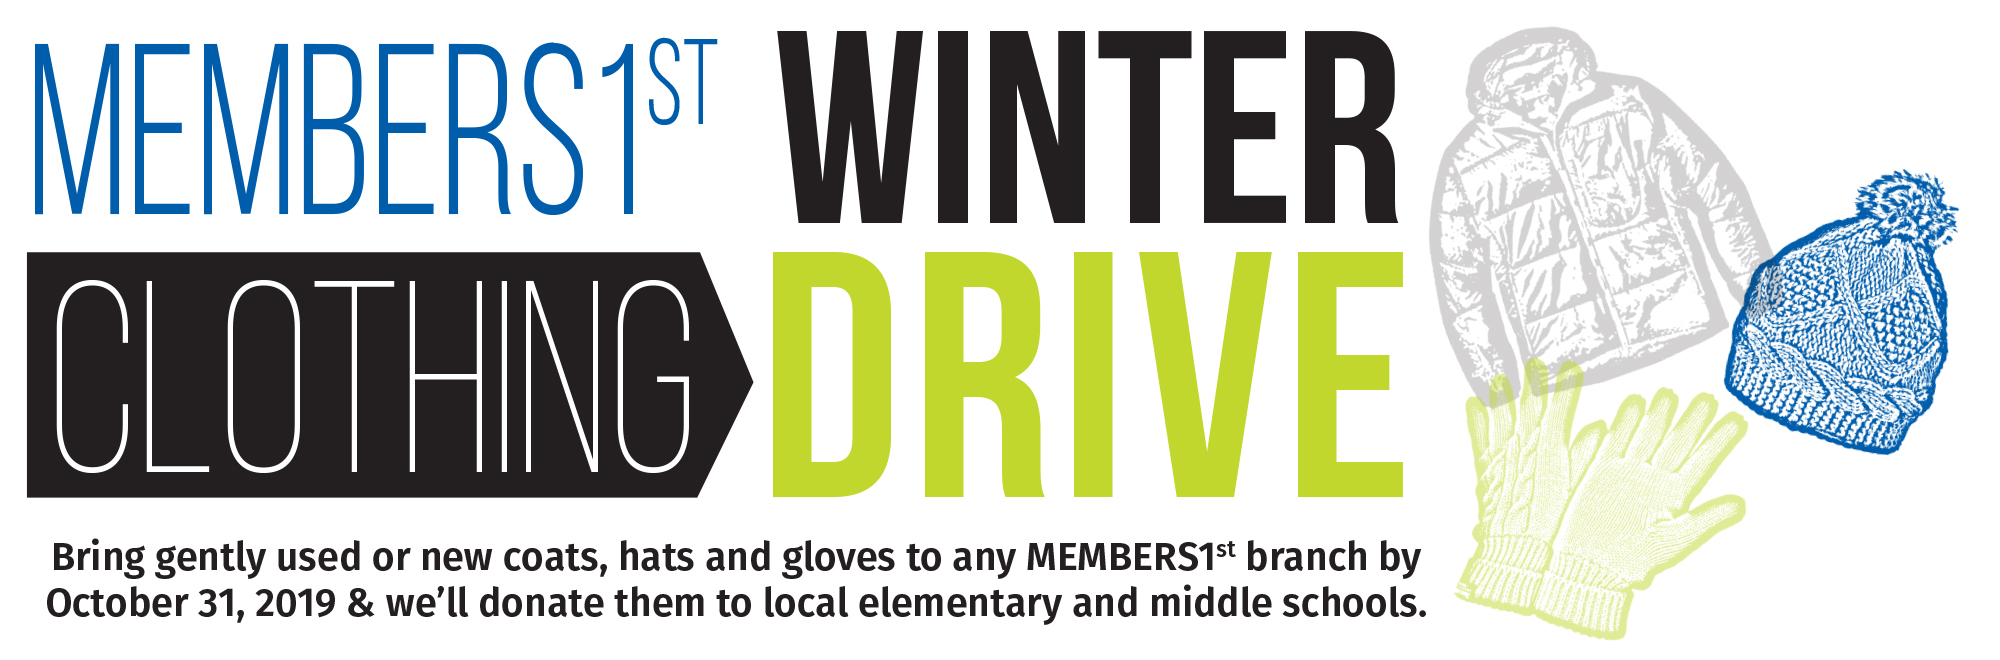 Bring winter clothing items to any MEMBERS1st branch by October 31st for our winter clothing drive!